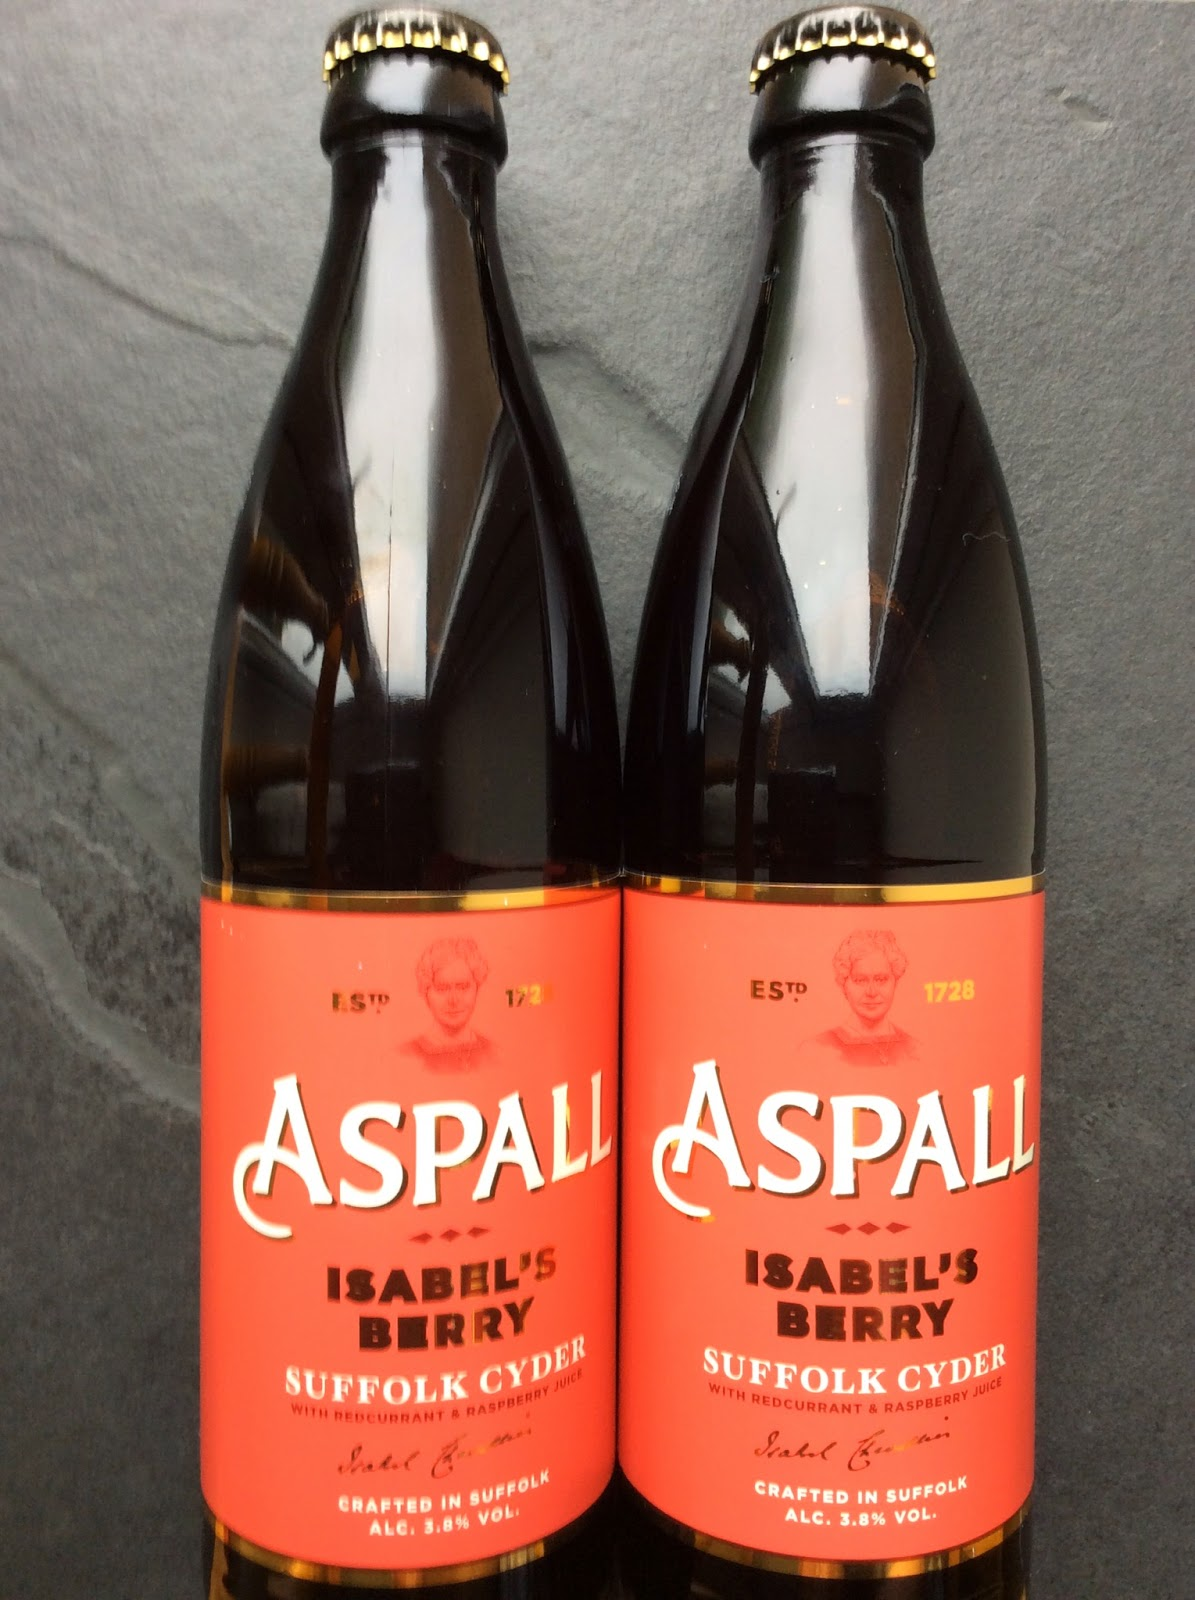 Isabel's Berry, Cyder, Aspall